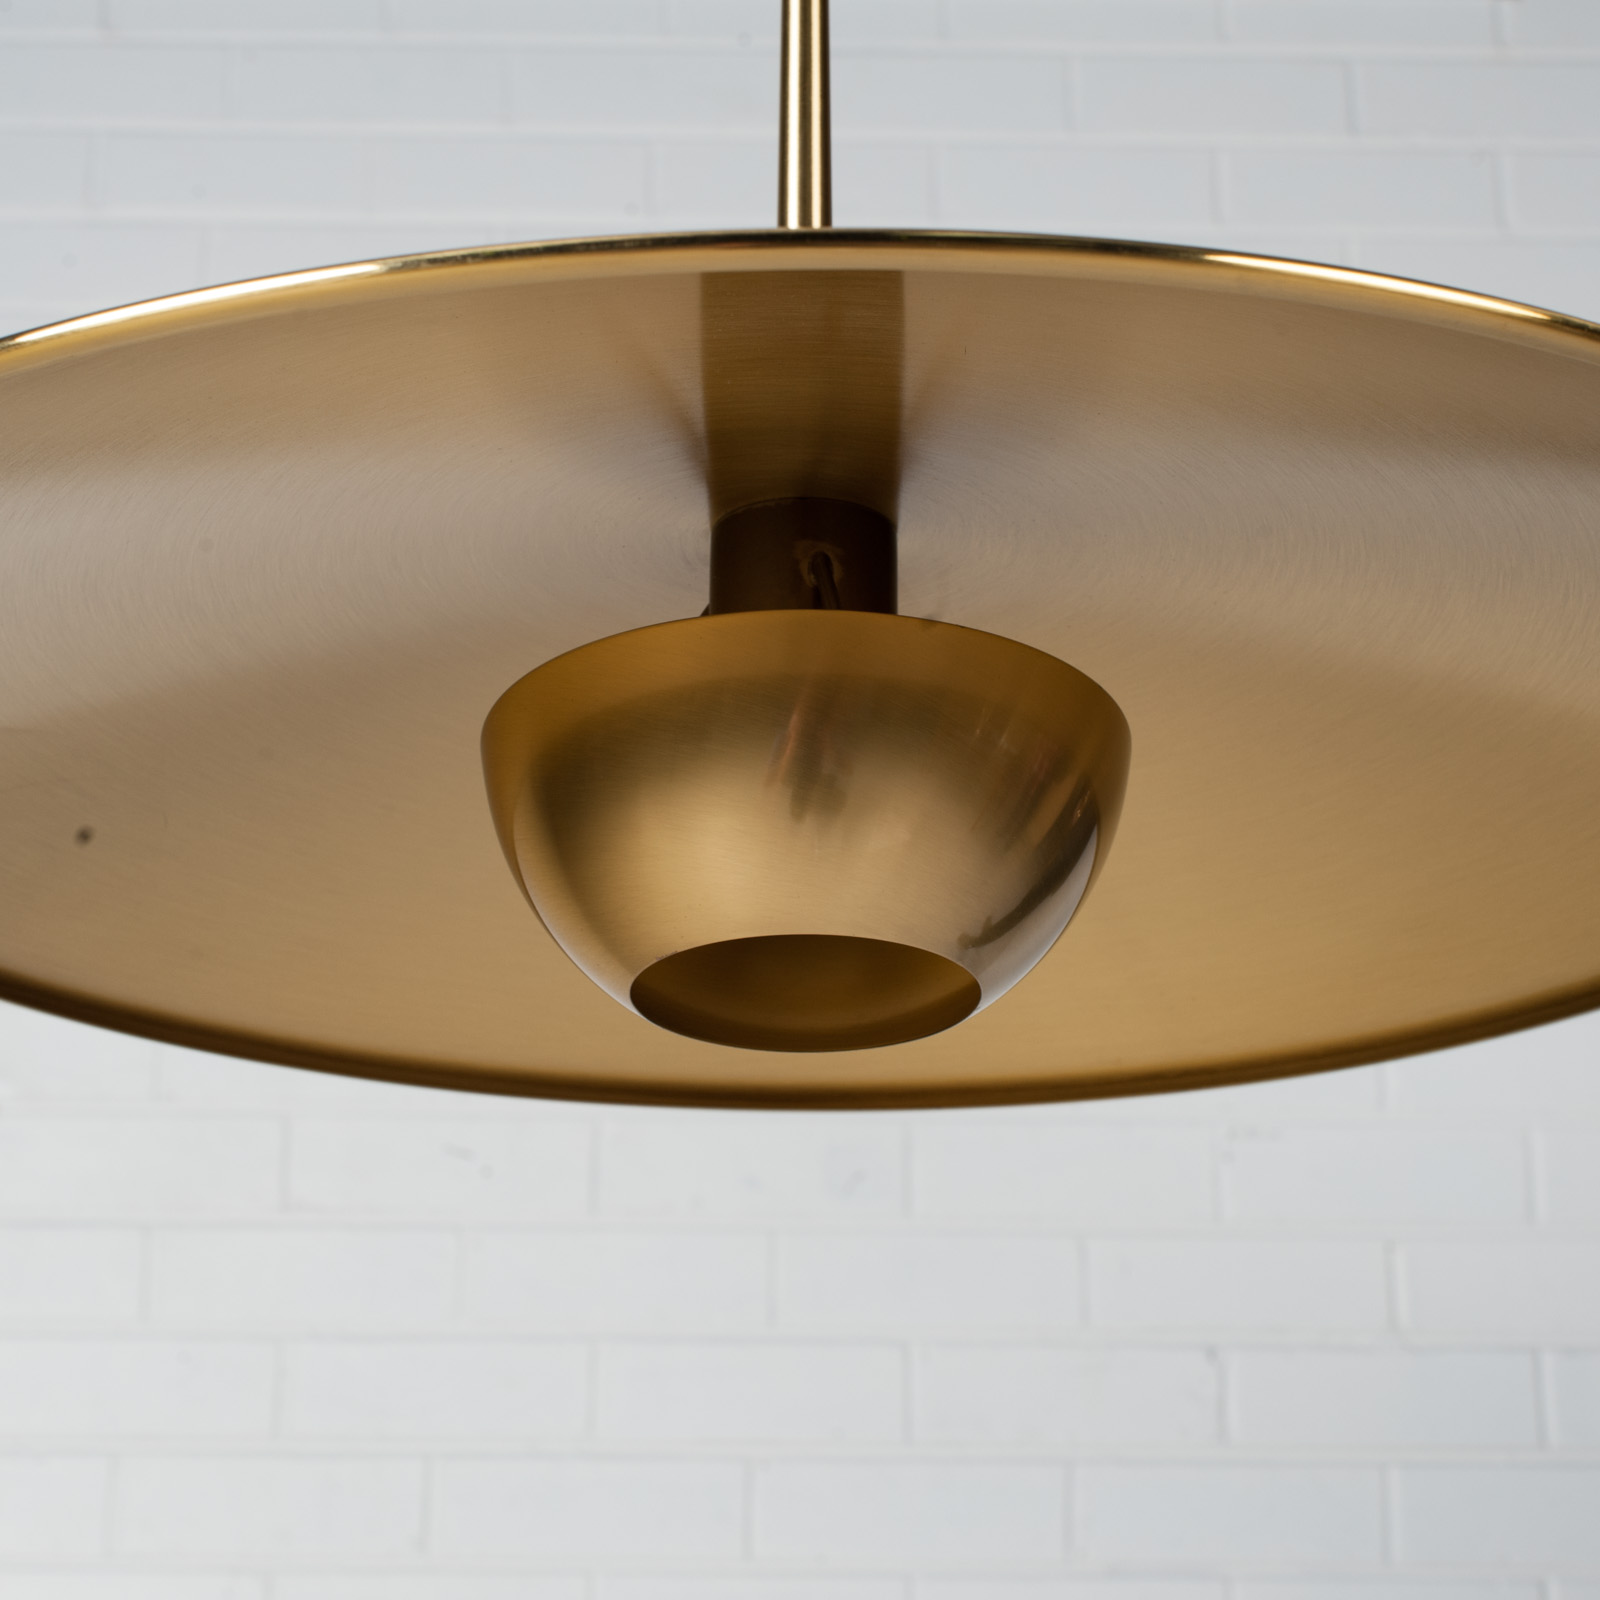 Onos 55 Counterbalance Pendant By Florian Schulz In Brass 1970s Germany 06